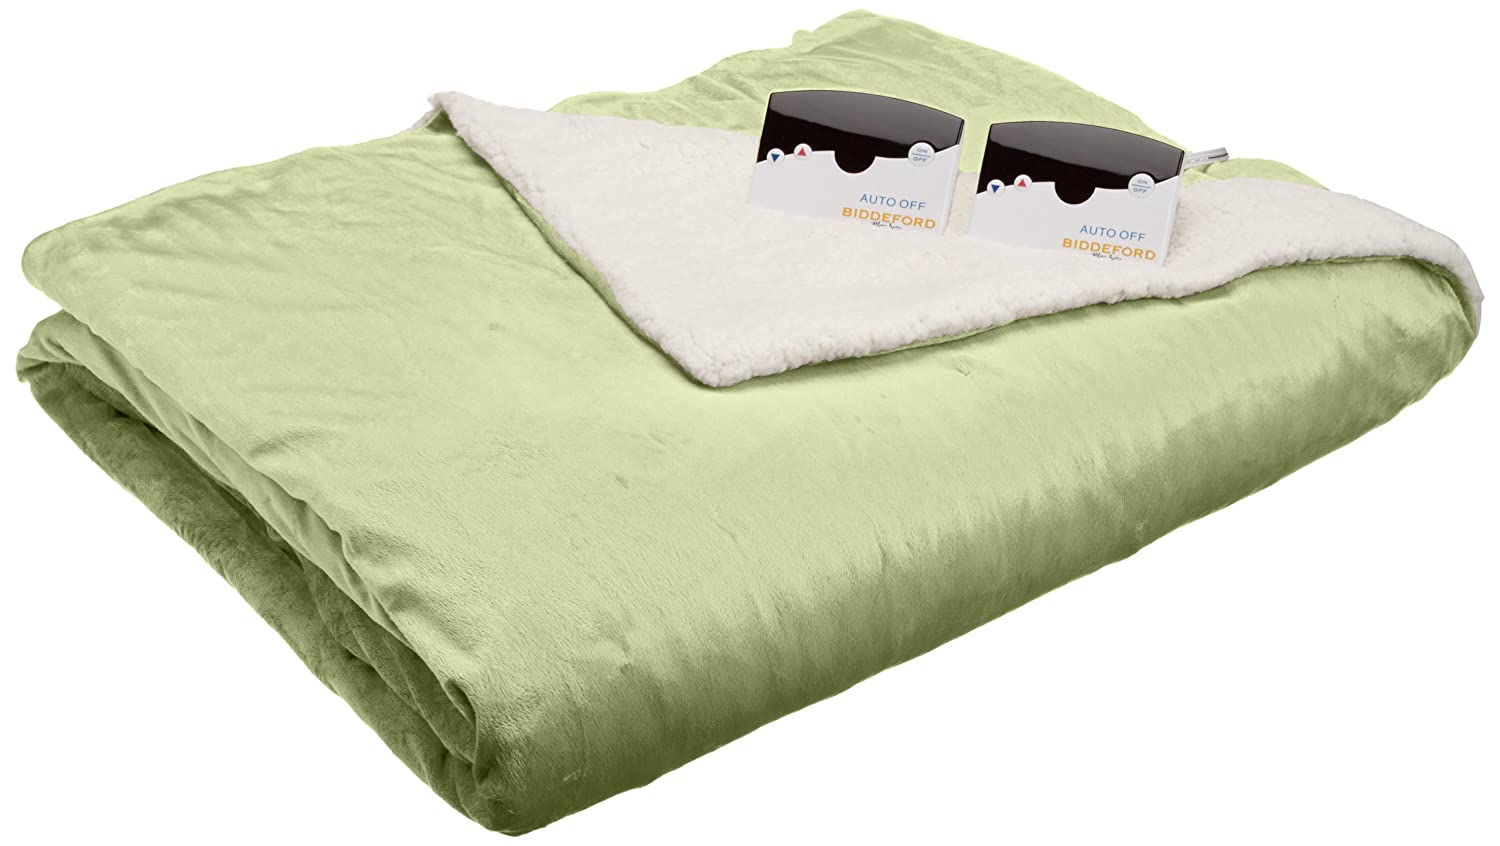 reviews mattress copper queen king sherpa incredible kitchen amazon bell electric low blanket plush dreadful serta ivory biddeford heated r b size triple home blankets voltage full luxurious astonishing rib com pad blank micro controller wonderful of